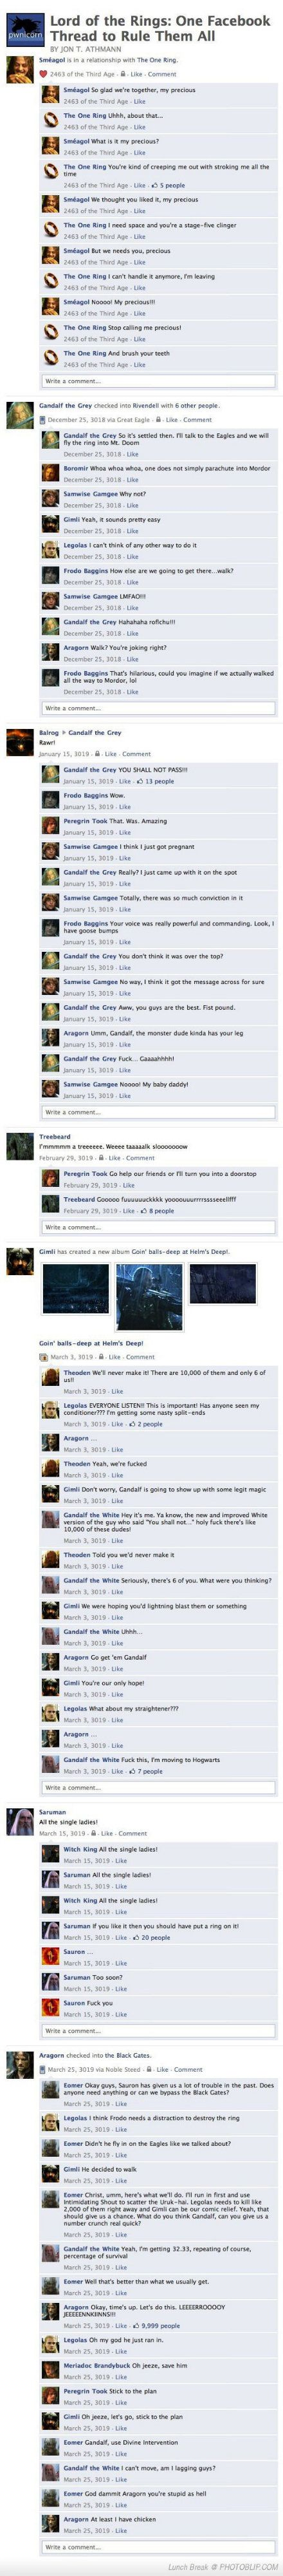 "Lord Of The Rings Facebook. ""Nooo! My baby daddy!"" is where I lost it :)"